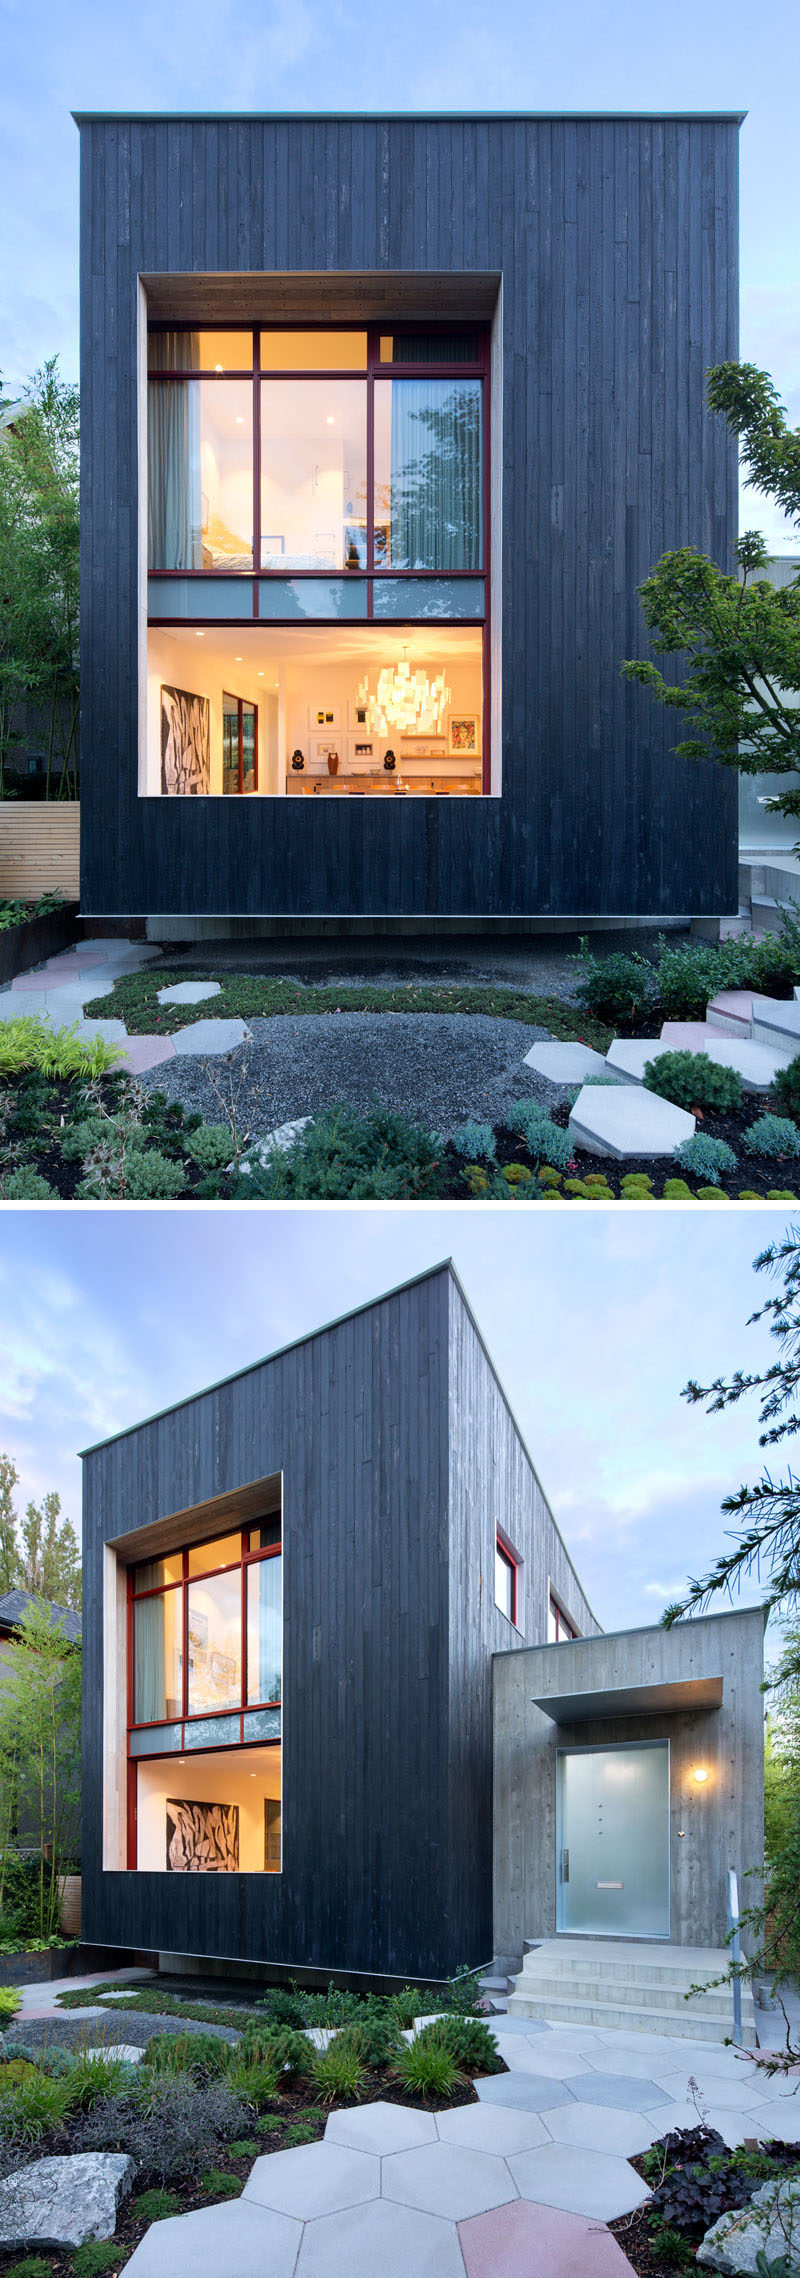 Carbonized Cypress Wood Covers The Exterior Of This New